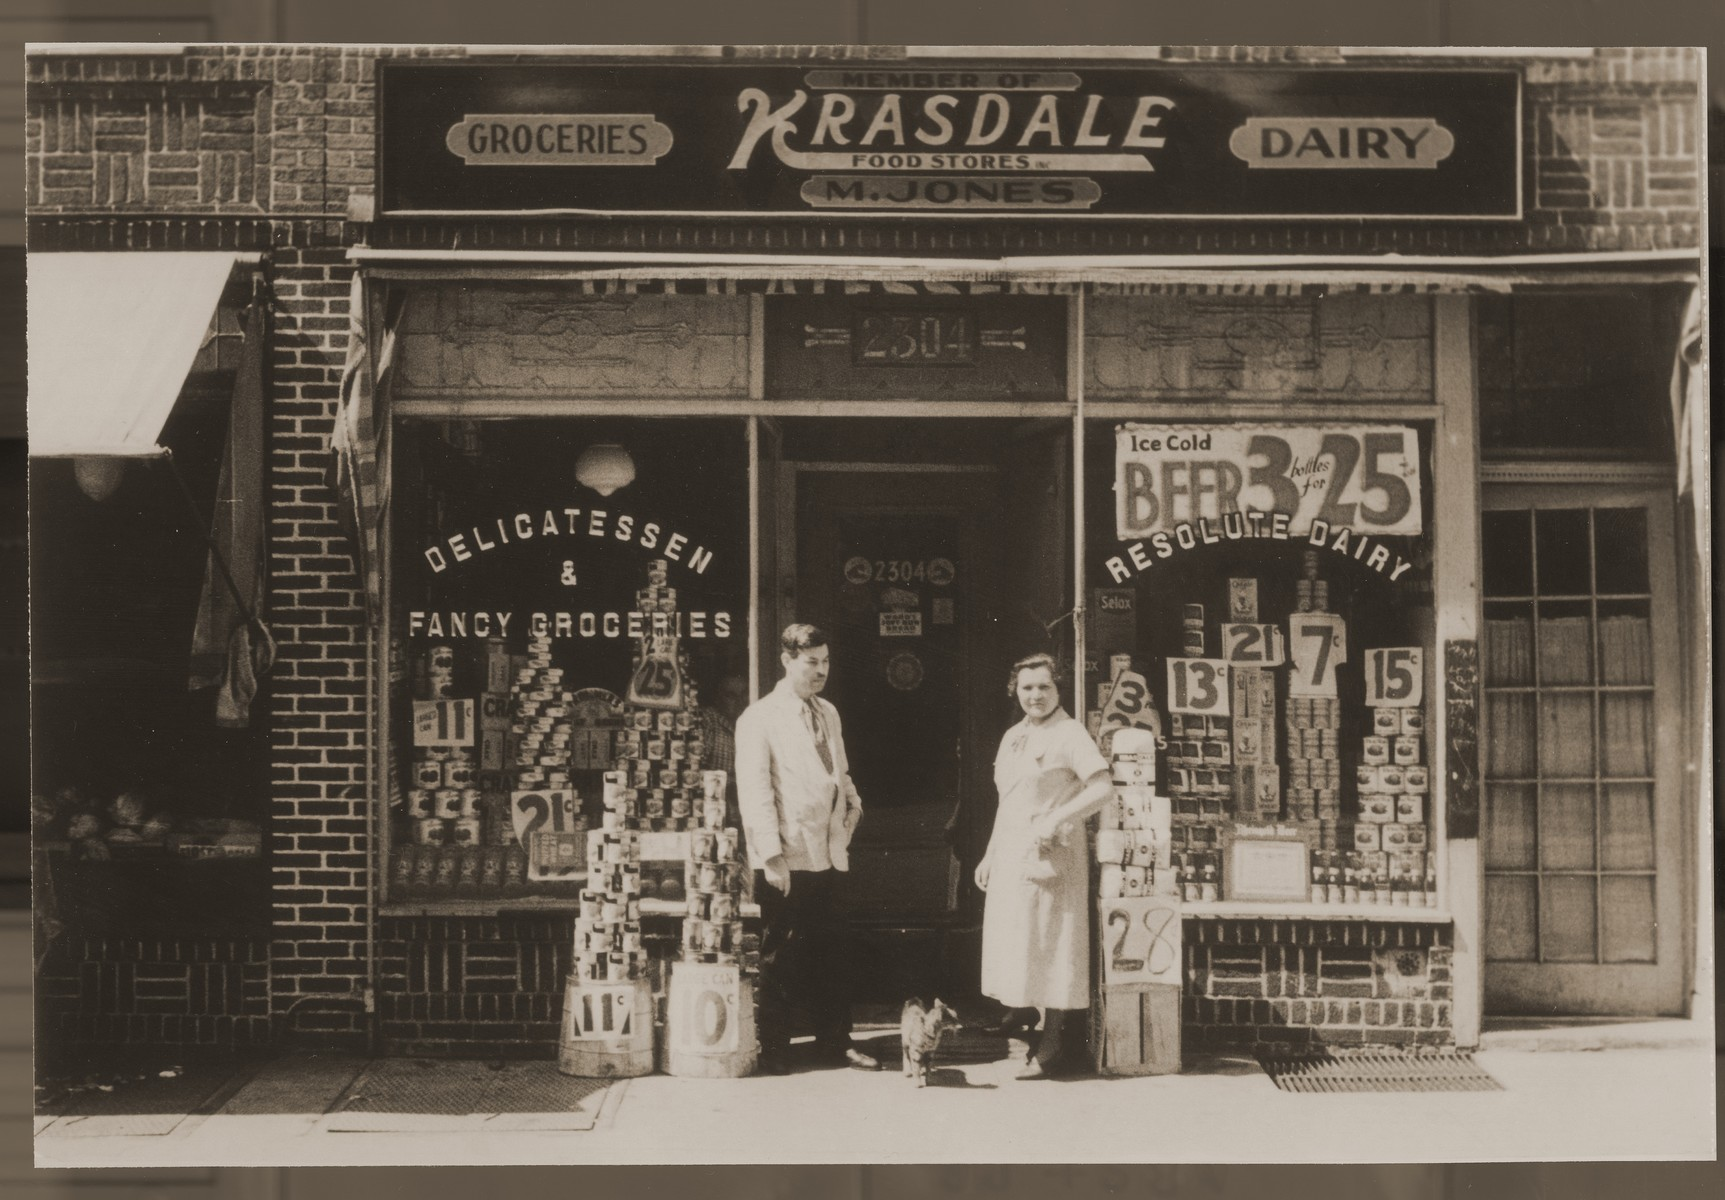 Morris and Chaya Gar Jones in front of their grocery store in New York. Chaya Gar, the donor's mother, came to America at the request of her cousin, Morris Jones, whom she married soon after her arrival in 1930.